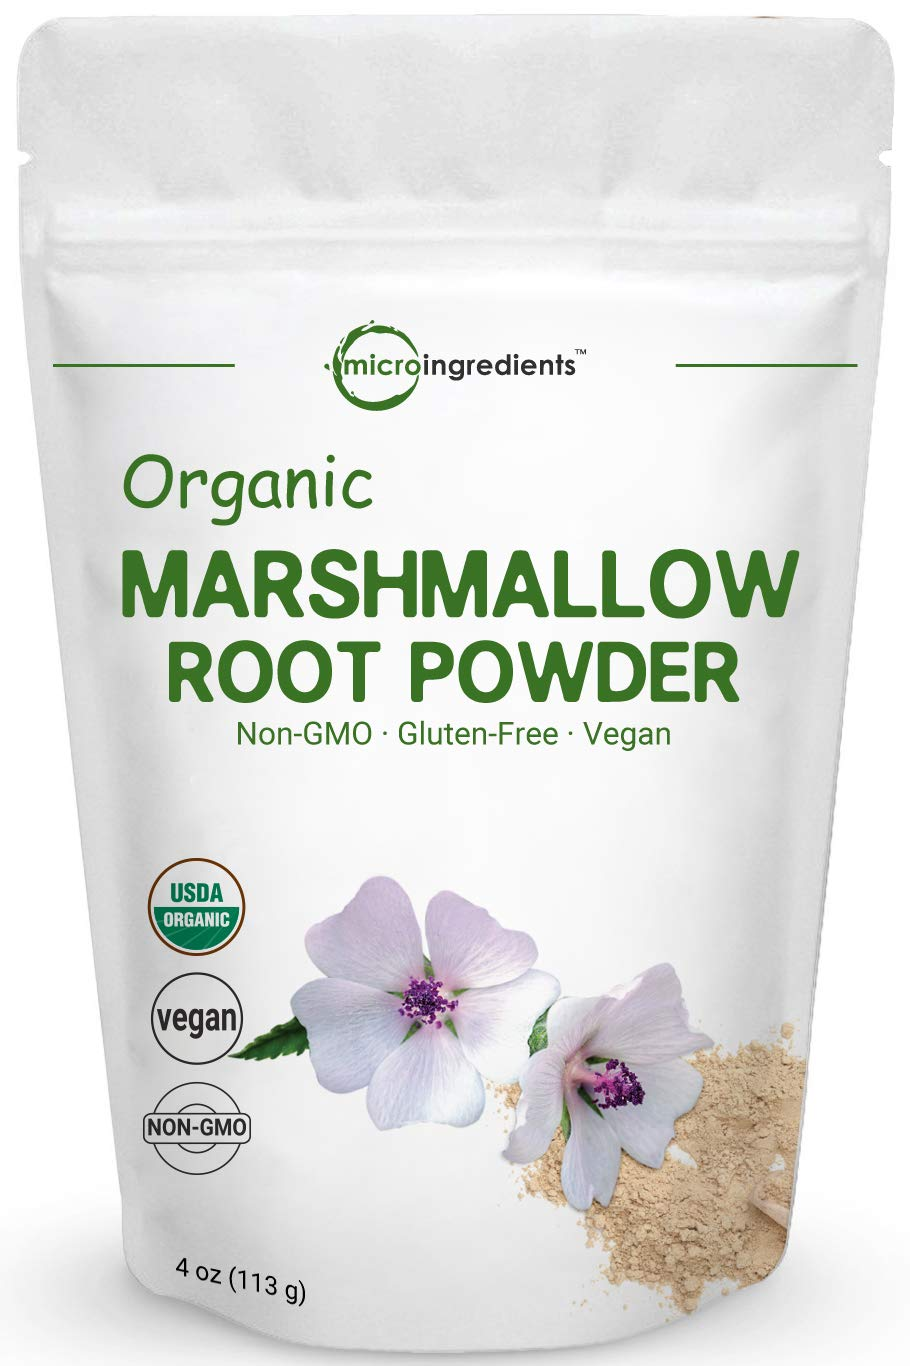 Pure USDA Organic Marshmallow Root Powder, 4 Ounce, Supports Digestive Gastrointestinal Health, No Irradiated, No Contaminated and No GMOs. Vegan Friendly.